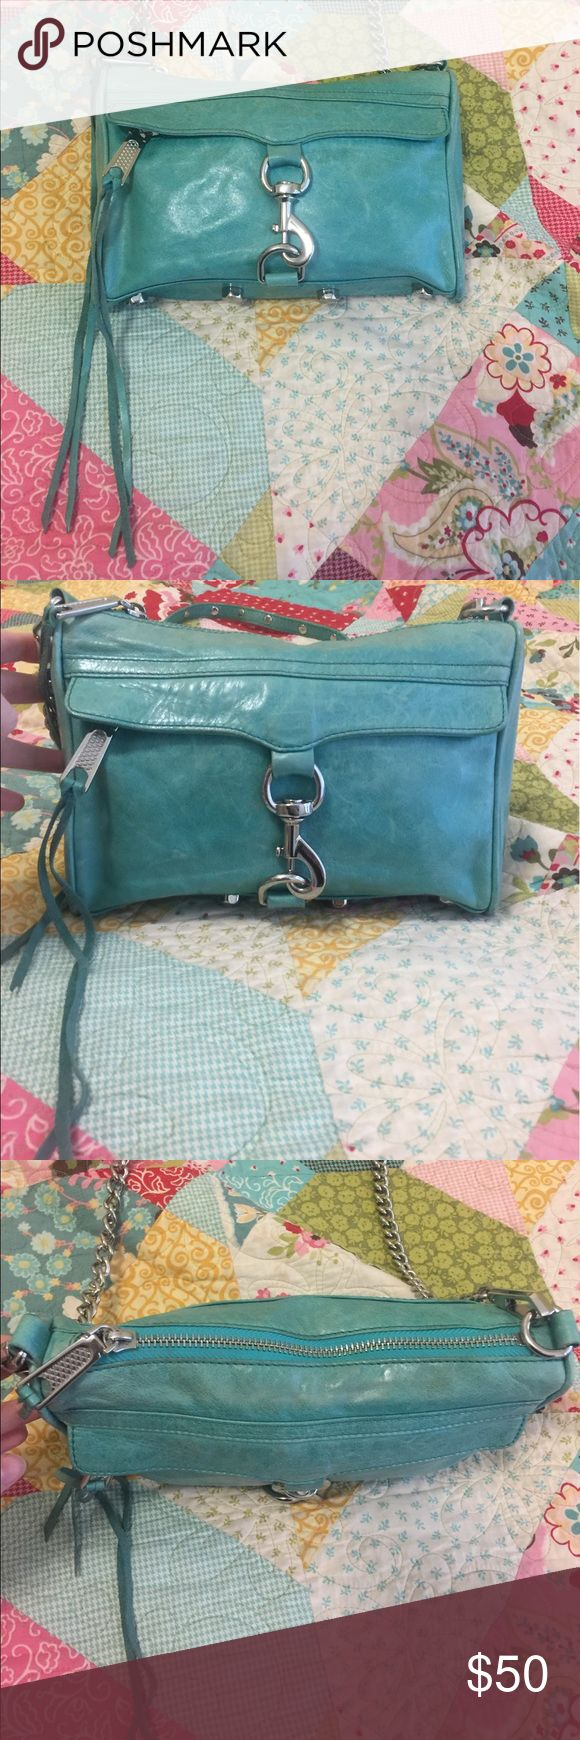 Teal Rebecca Minkoff Mini MAC Handbag Genuine Rebecca Minkoff Teal Mini MAC Bag. Smoke free and pet free home. Slight fading due to use but in great condition. Feel free to use the offer button! Rebecca Minkoff Bags Crossbody Bags